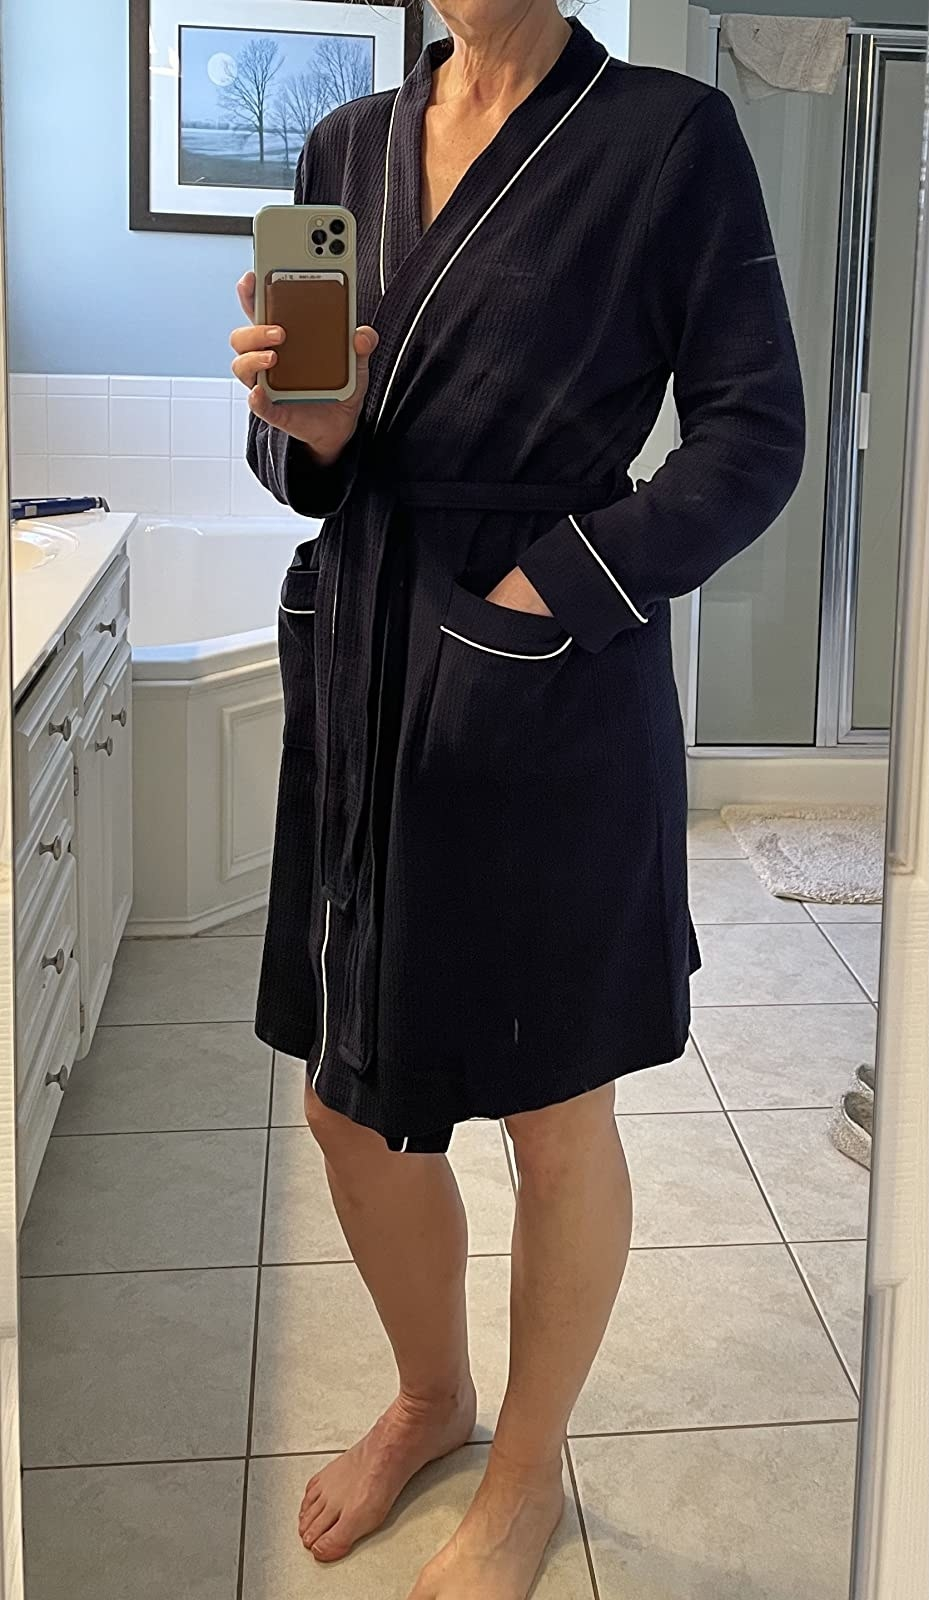 reviewer image of a customer taking a mirror selfie wearing the black Amazon Essentials Women's Lightweight Waffle Mid-Length Robe